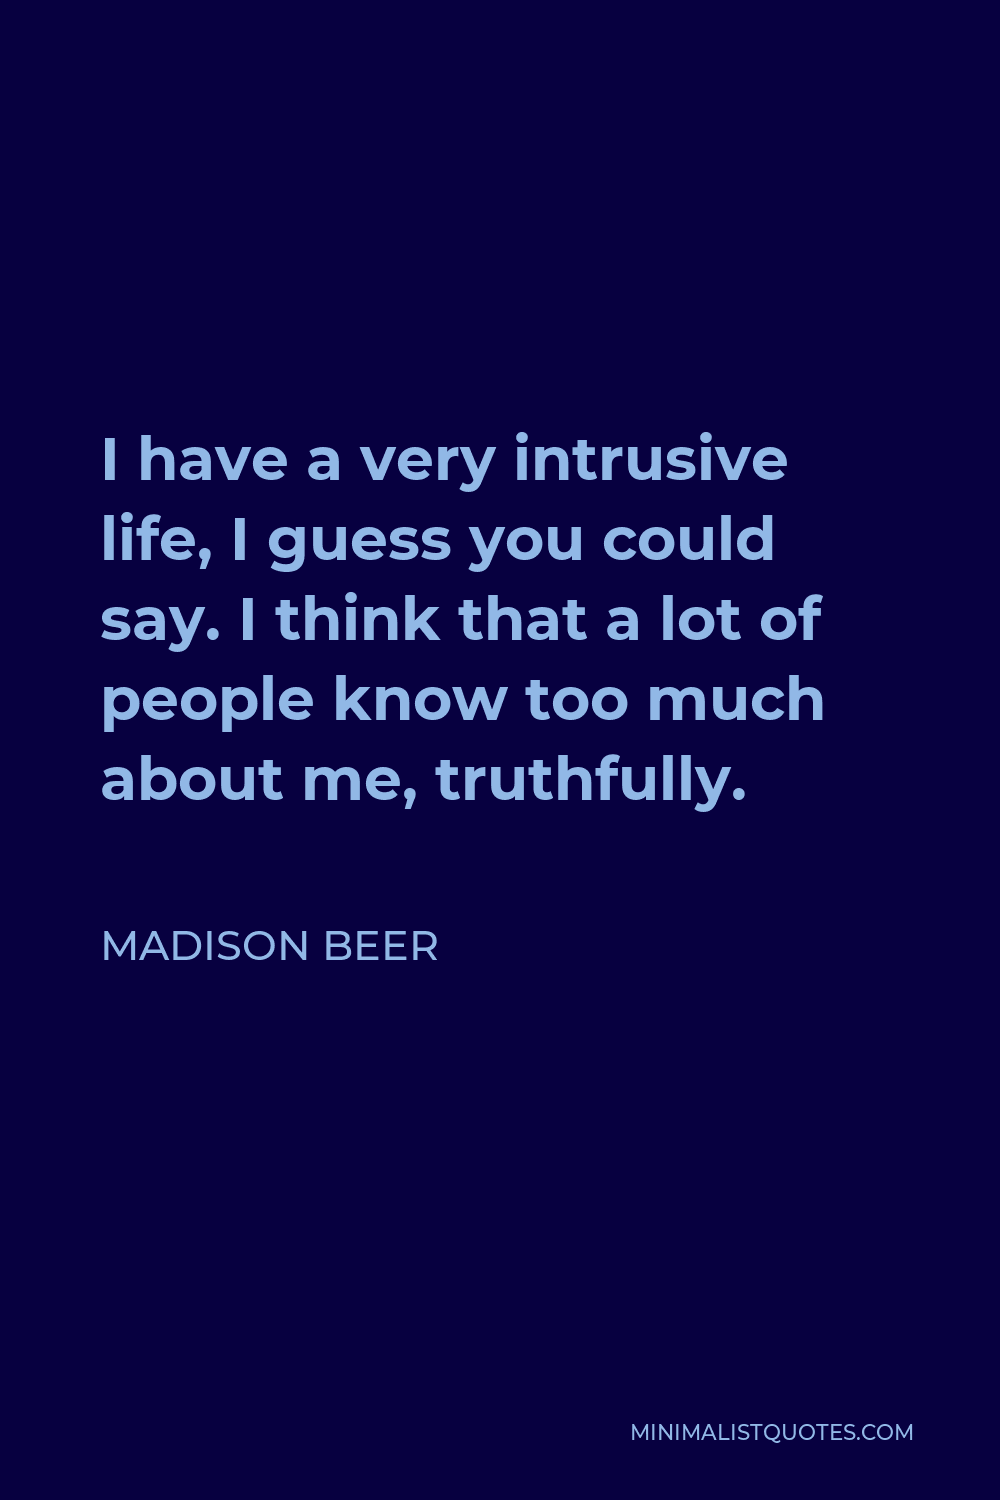 Madison Beer Quote - I have a very intrusive life, I guess you could say. I think that a lot of people know too much about me, truthfully.